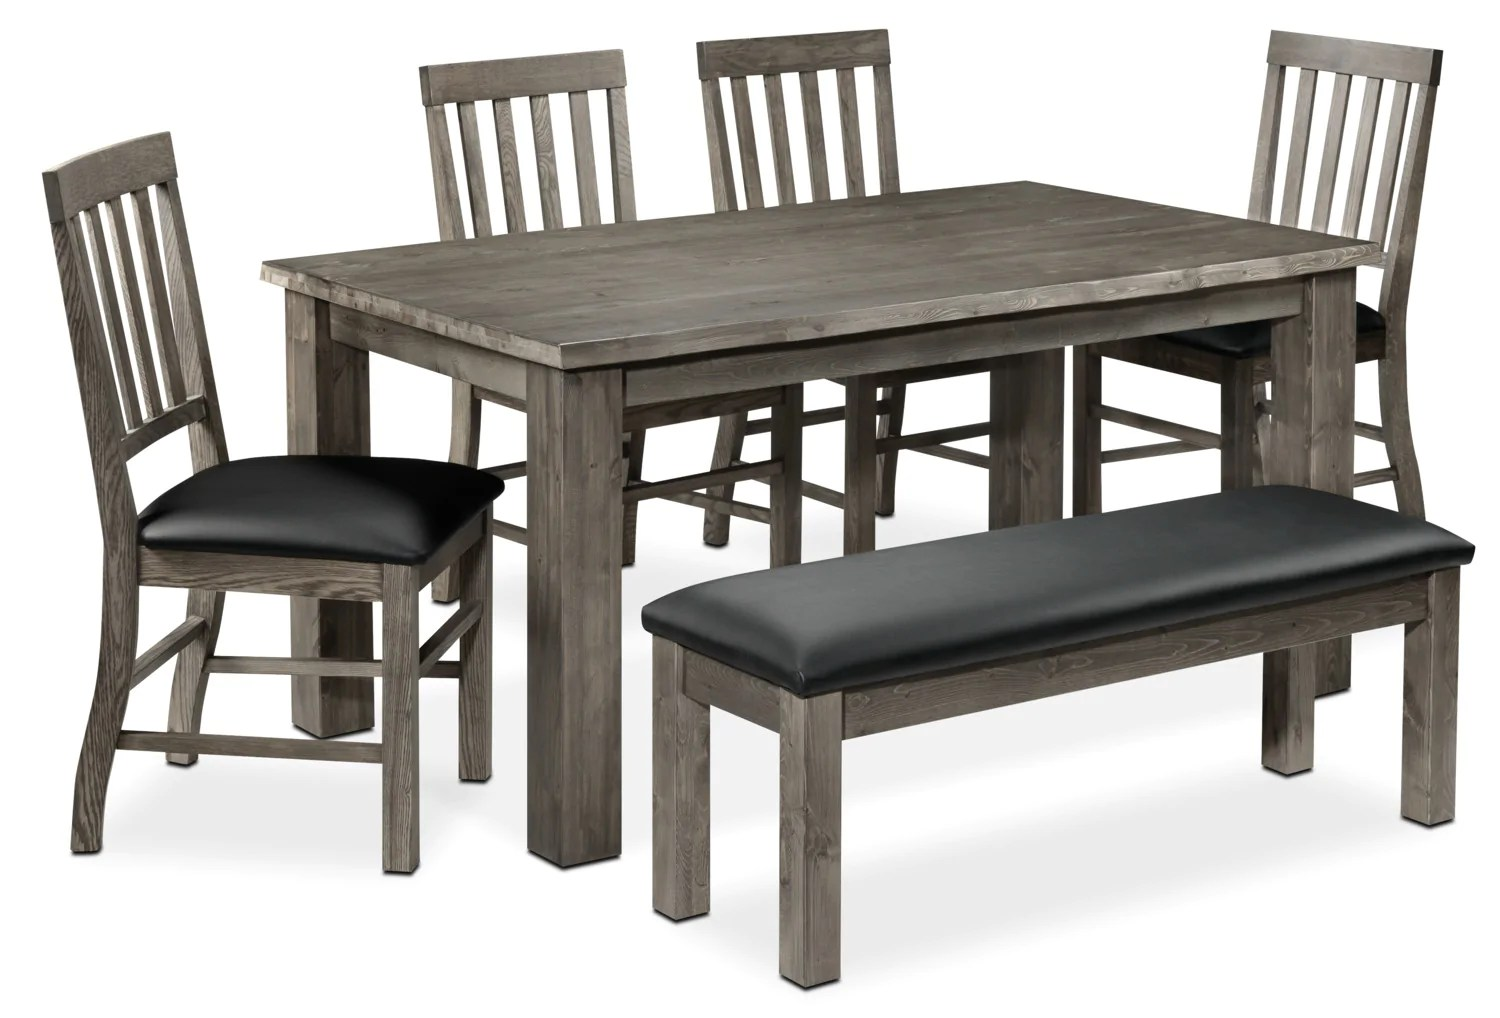 Black Dining Room Table And Chairs Porter 6 Piece Dining Room Set Slate And Black